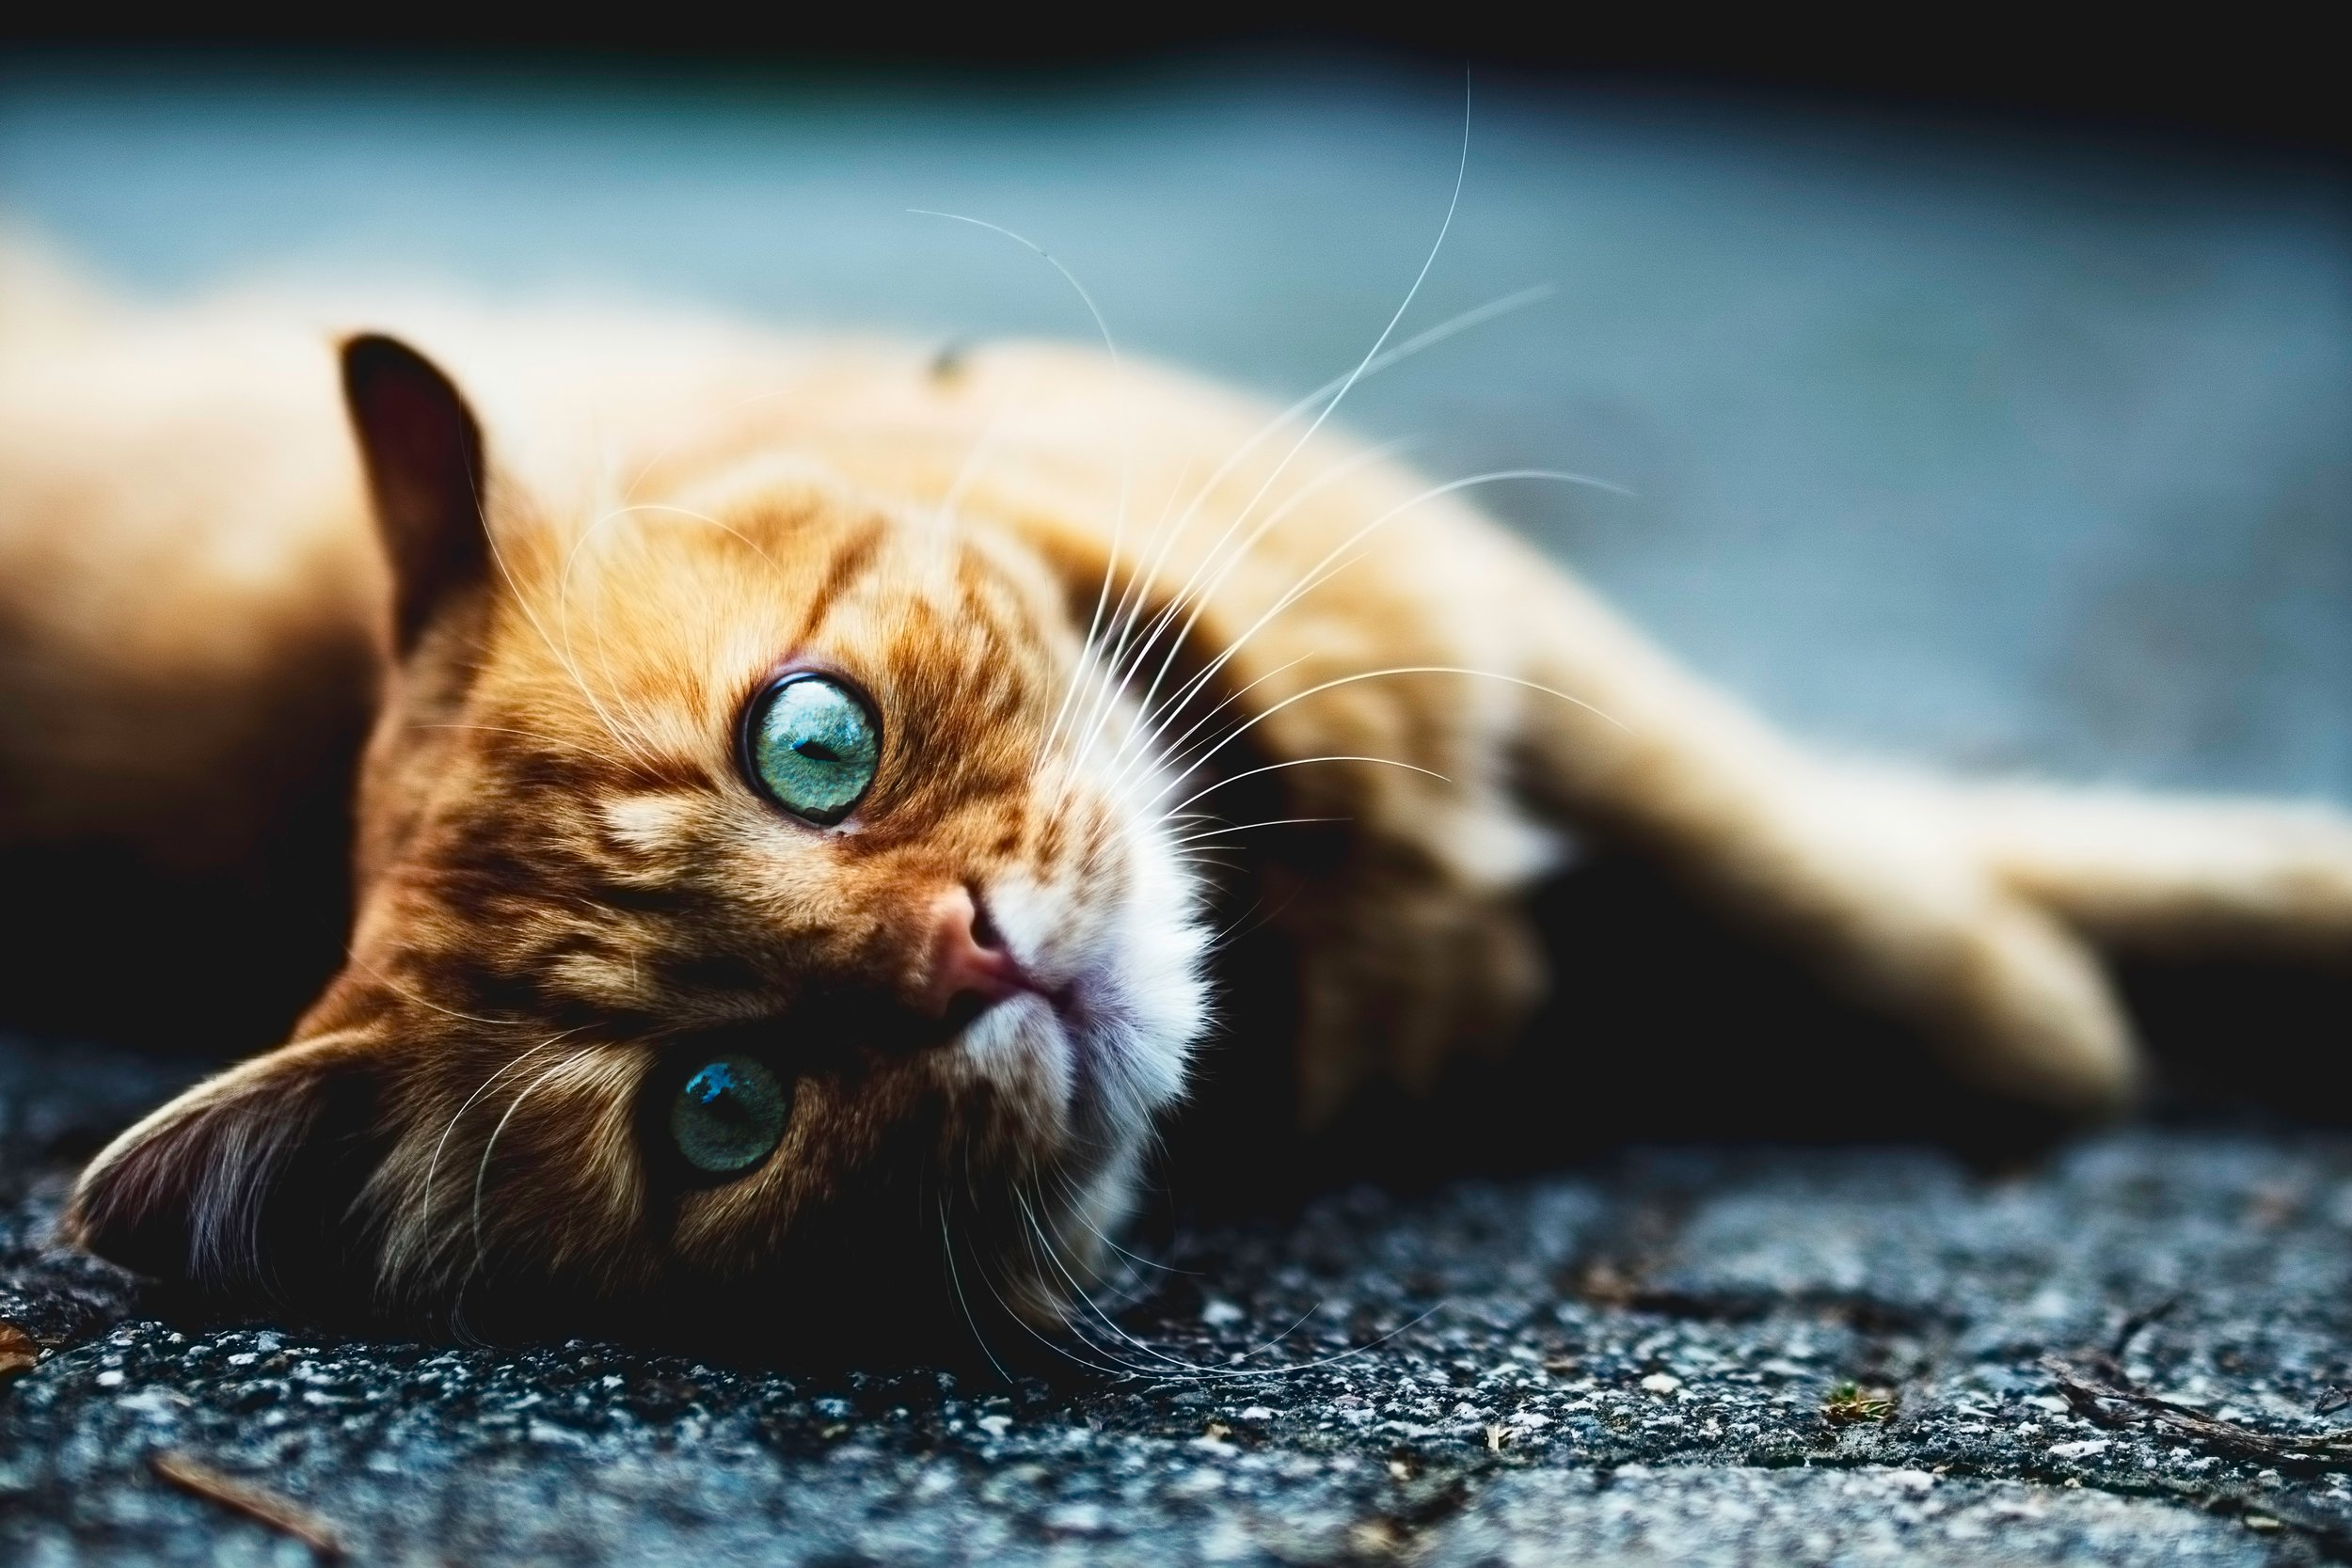 One of many cute kittens to be found on the internet.   Simone Dalmeri/Unsplash  (CC BY0)